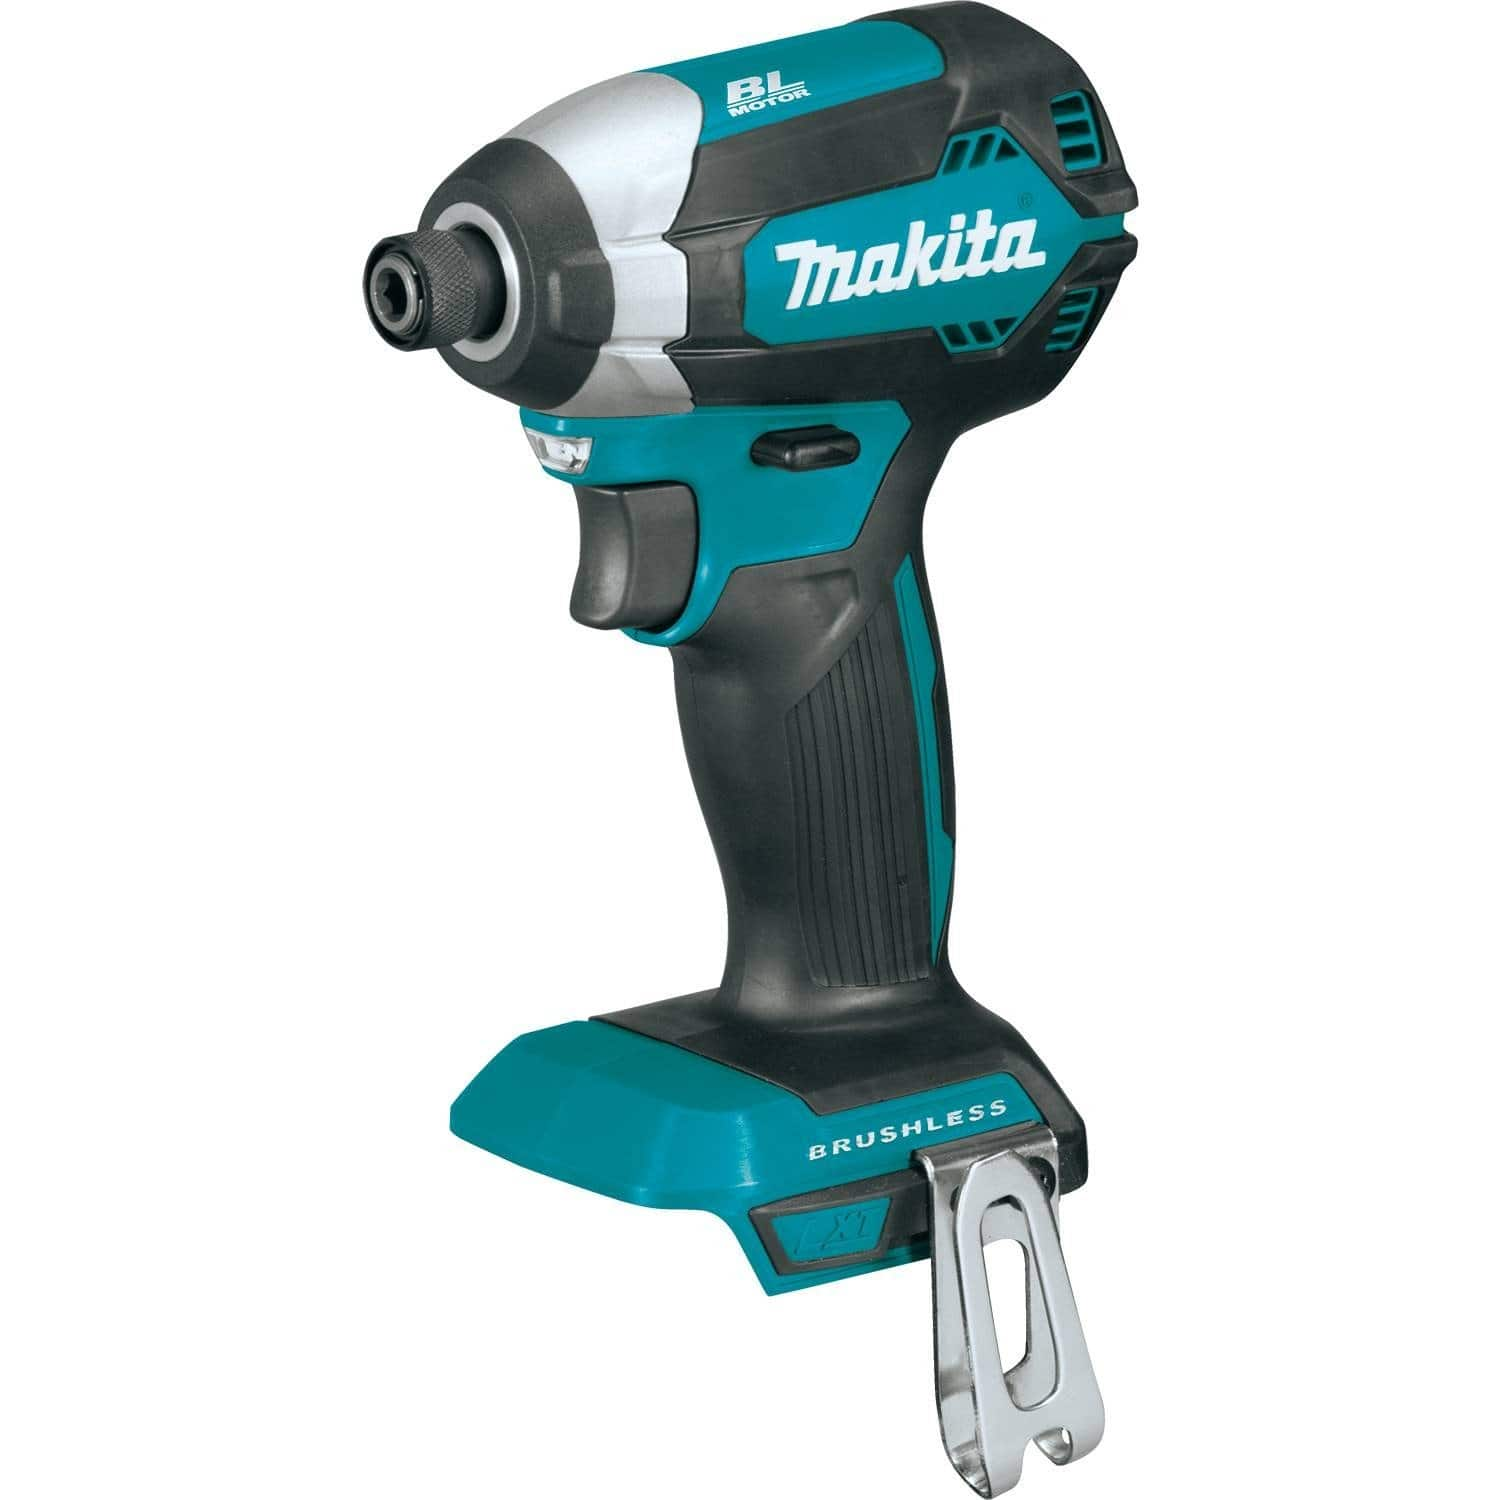 Makita 18V LXT Lithium-Ion Brushless Cordless Combo Kit (4 Piece) @ Amazon and Home Depot $236.09